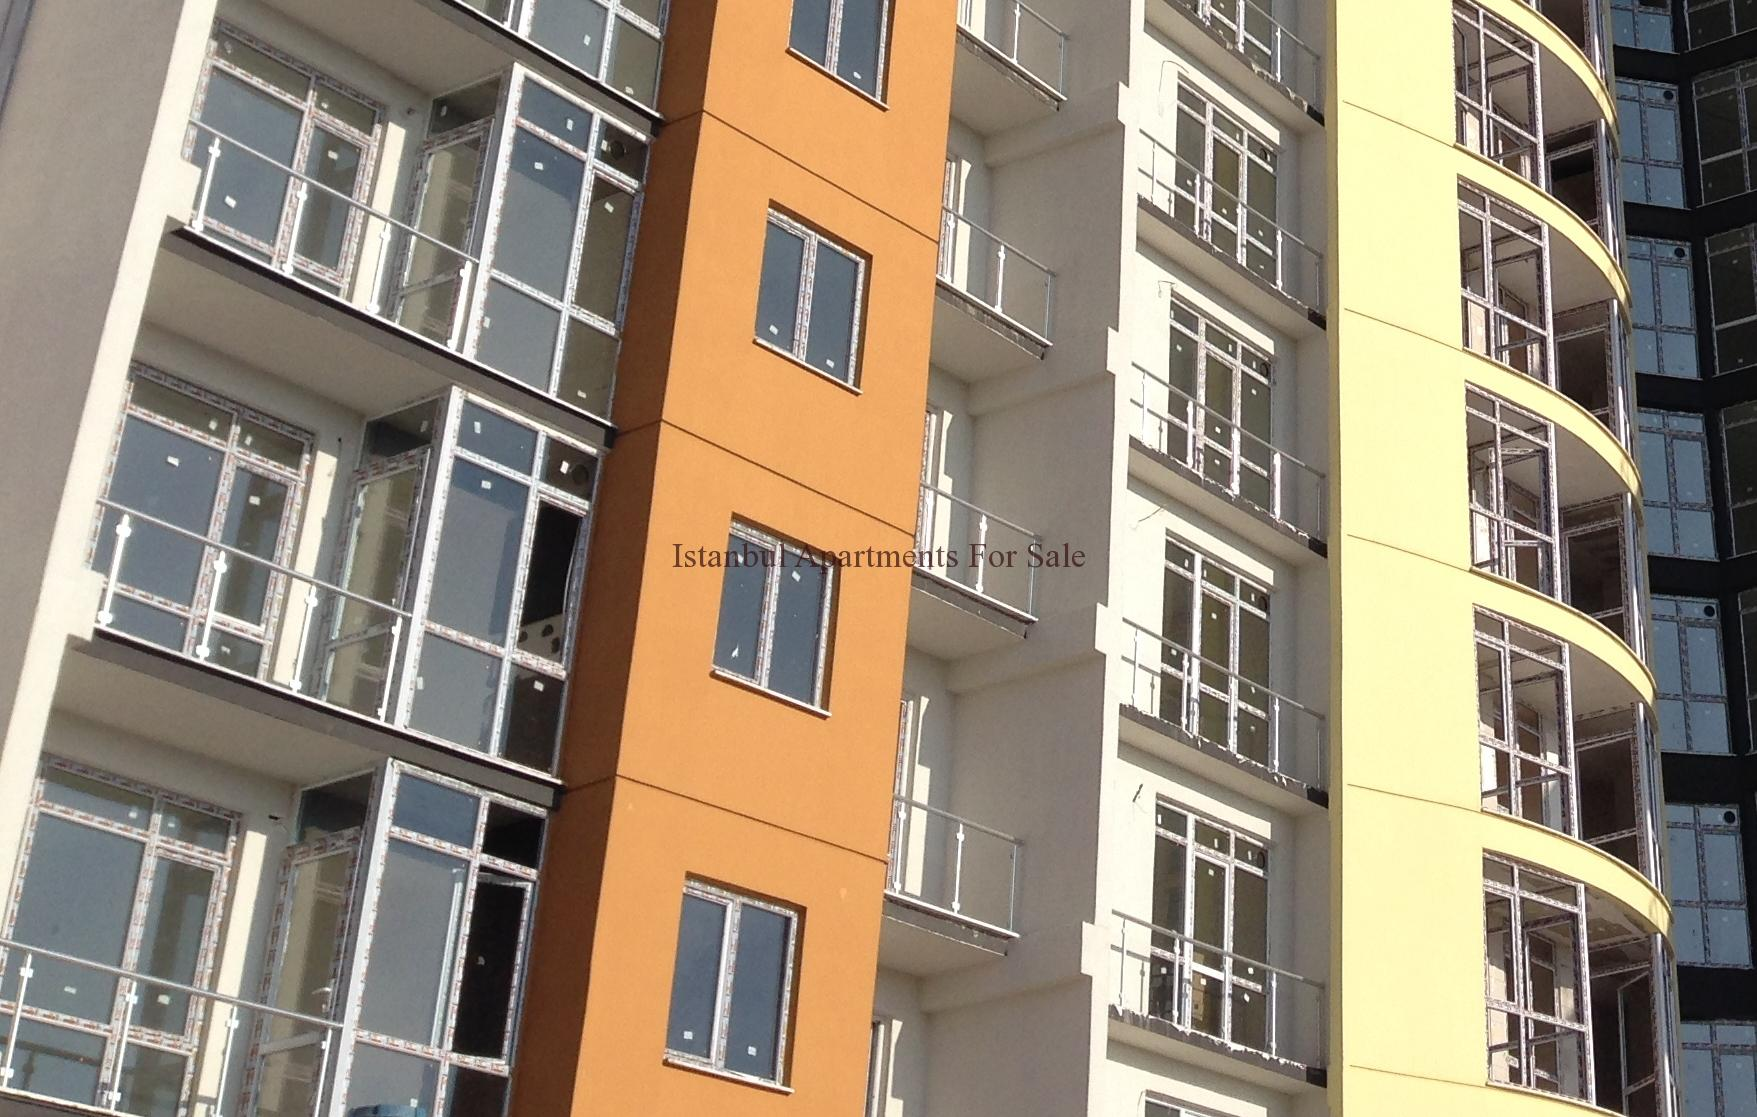 apartments in istanbul with rental guarantee property apartments houses for sale in istanbul. Black Bedroom Furniture Sets. Home Design Ideas